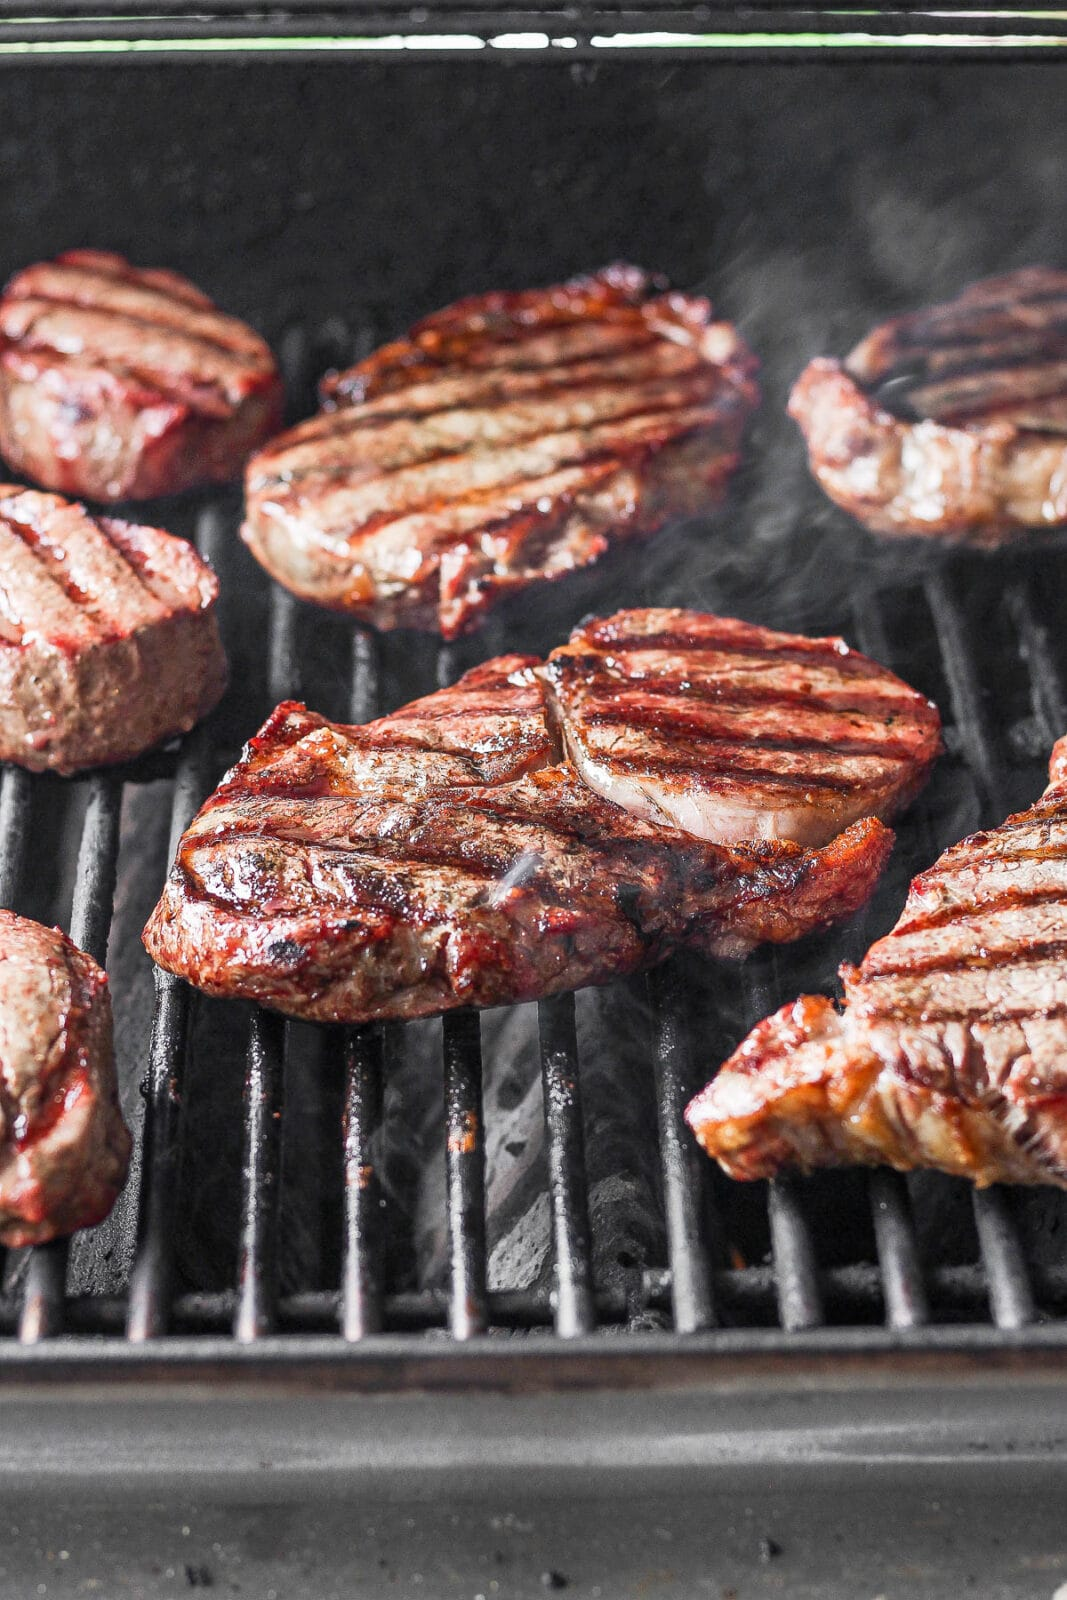 Grilled steaks on a grill.